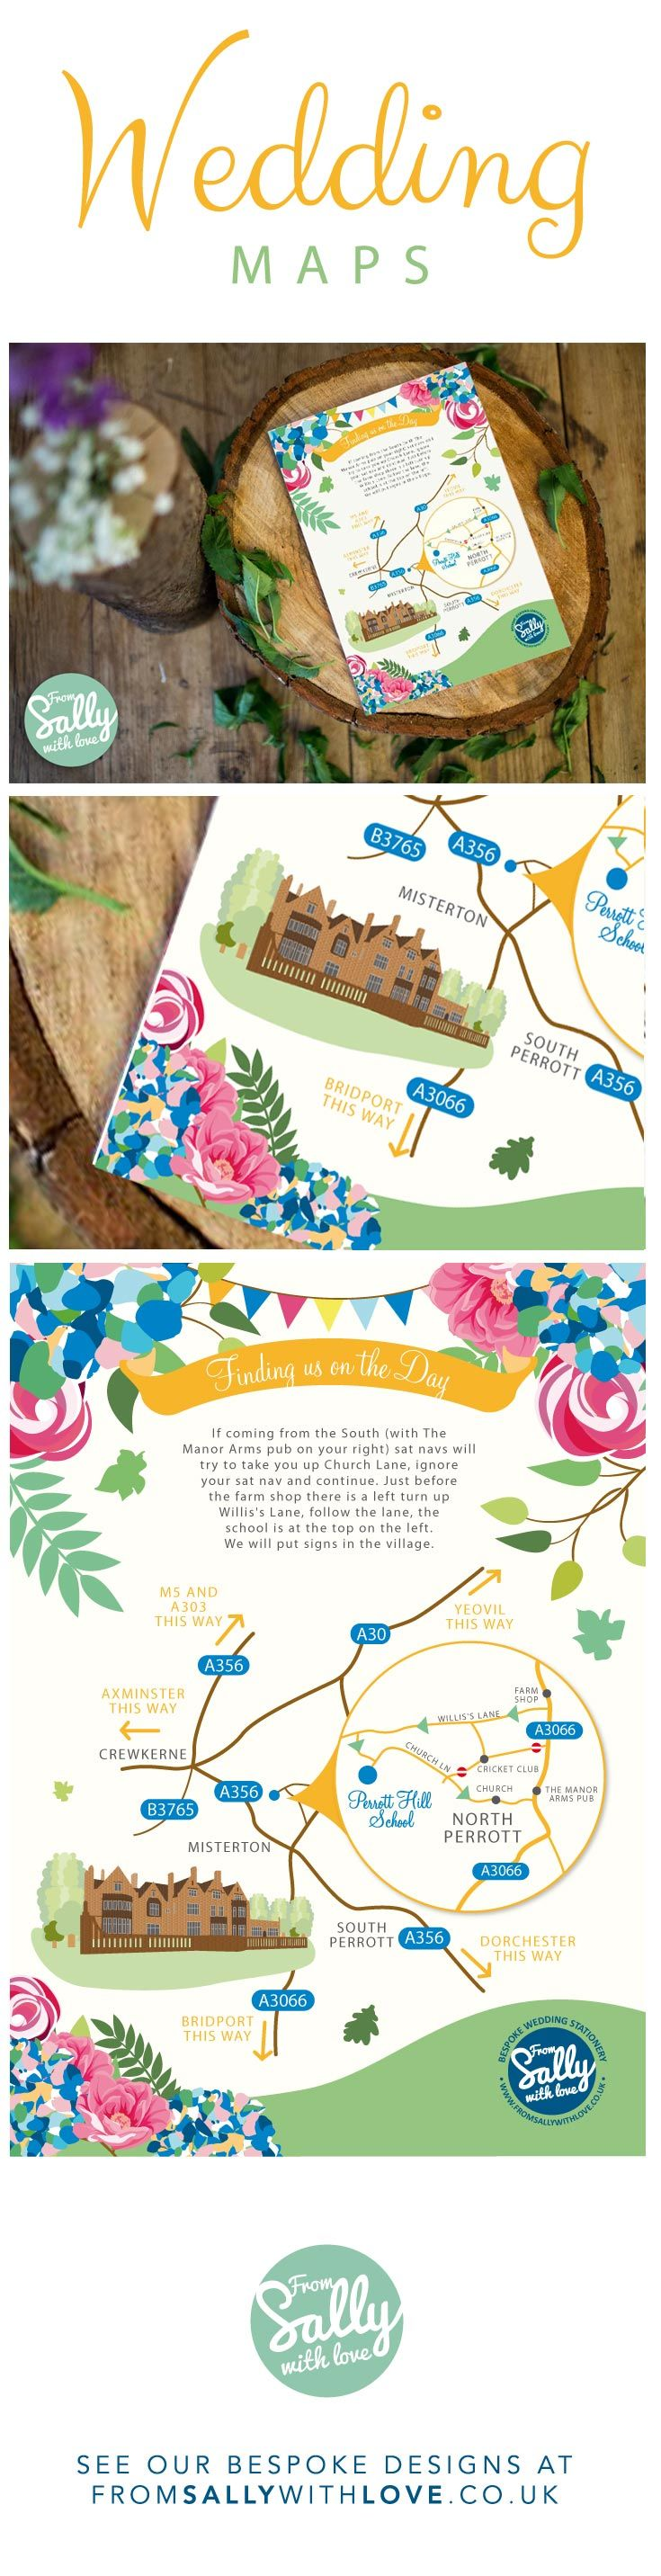 A wedding map with directions to the stunning Perrott Hill School in Somerset. surrounded with the flowers Kathryn and Matt's had at their wedding.   #wedding #map #weddingmap #weddingideas #weddinginspiration #weddingflowers #weddinginvitations #weddinginvites #invitation #invites #flowers #colourful #weddingexpert #directions